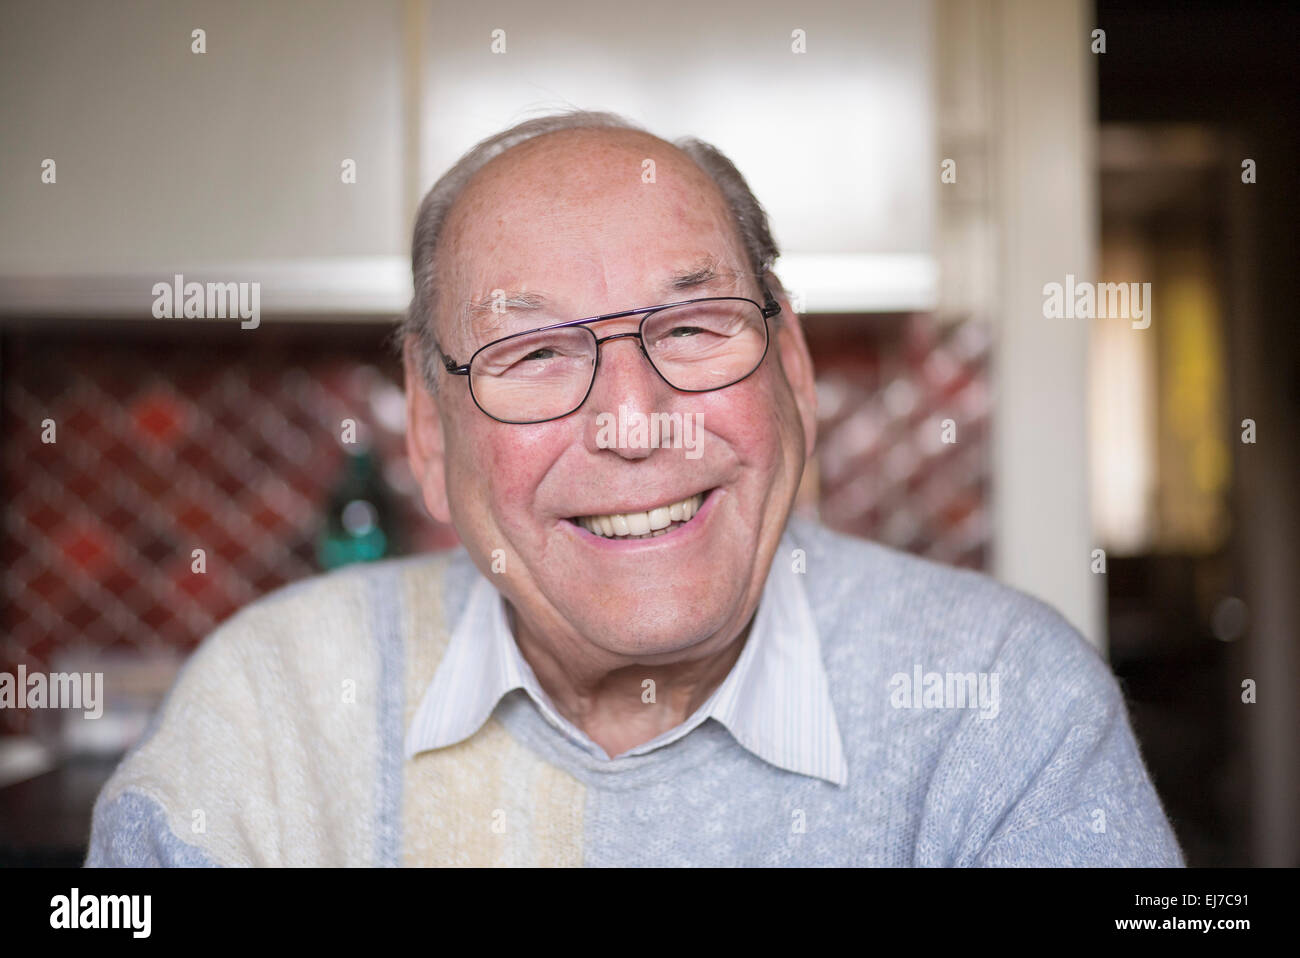 80s smiling elderly man portrait, portrait male laughing - Stock Image